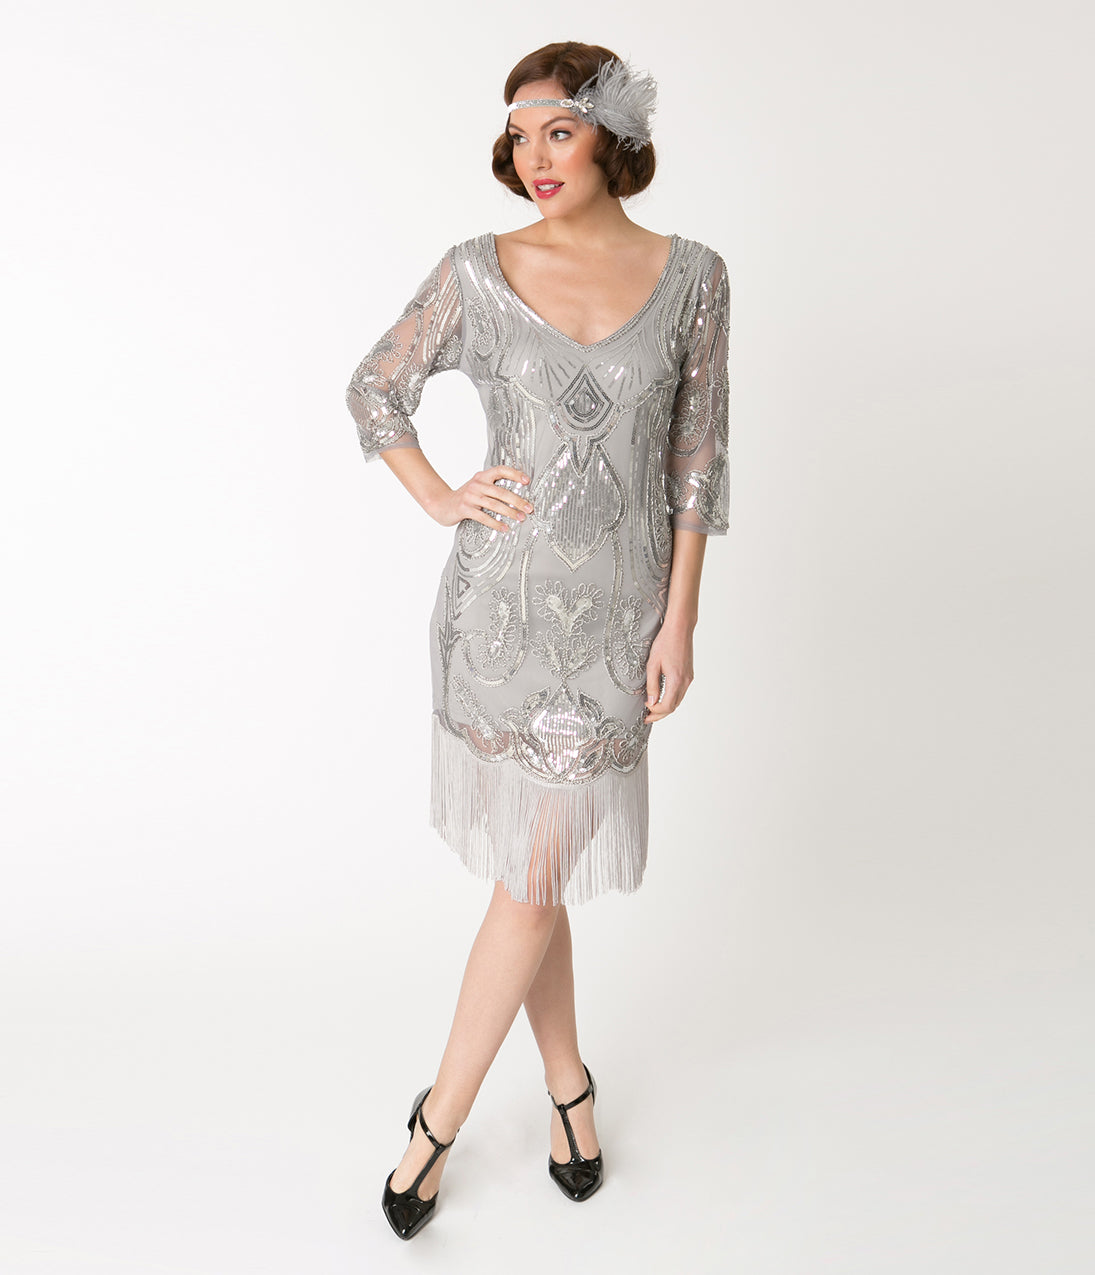 Downton Abbey Inspired Dresses Unique Vintage Silver Sequin Margaux Sleeved Fringe Flapper Dress $38.00 AT vintagedancer.com